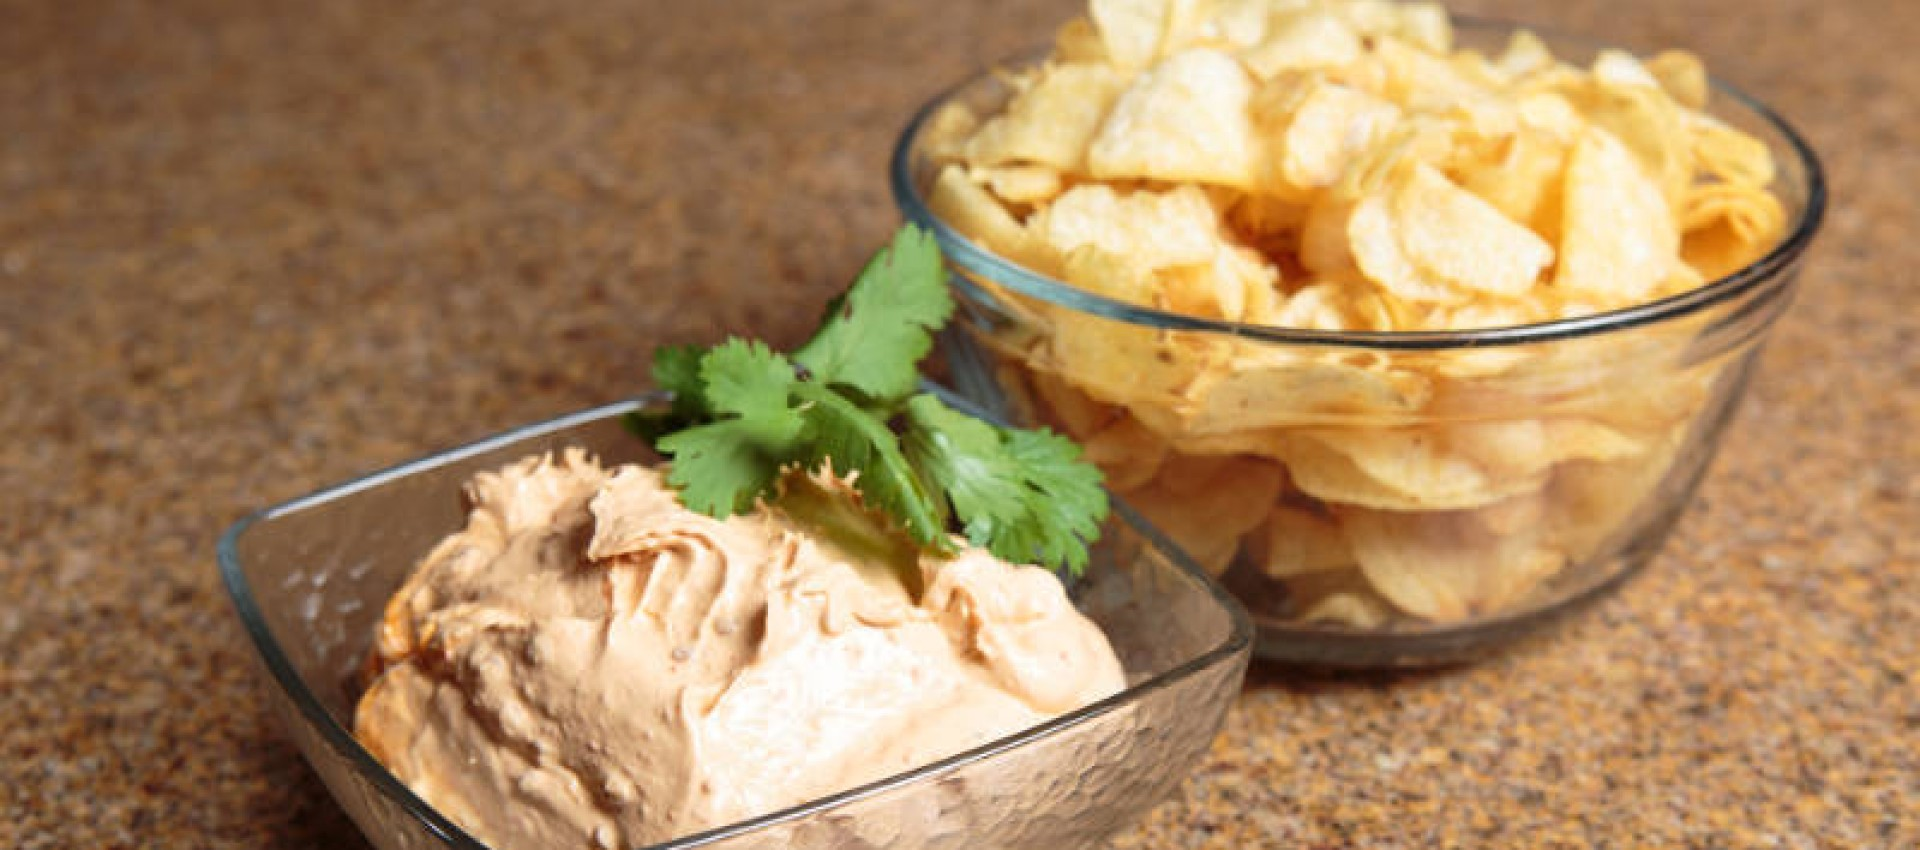 Chipotle Cheese Dip Image